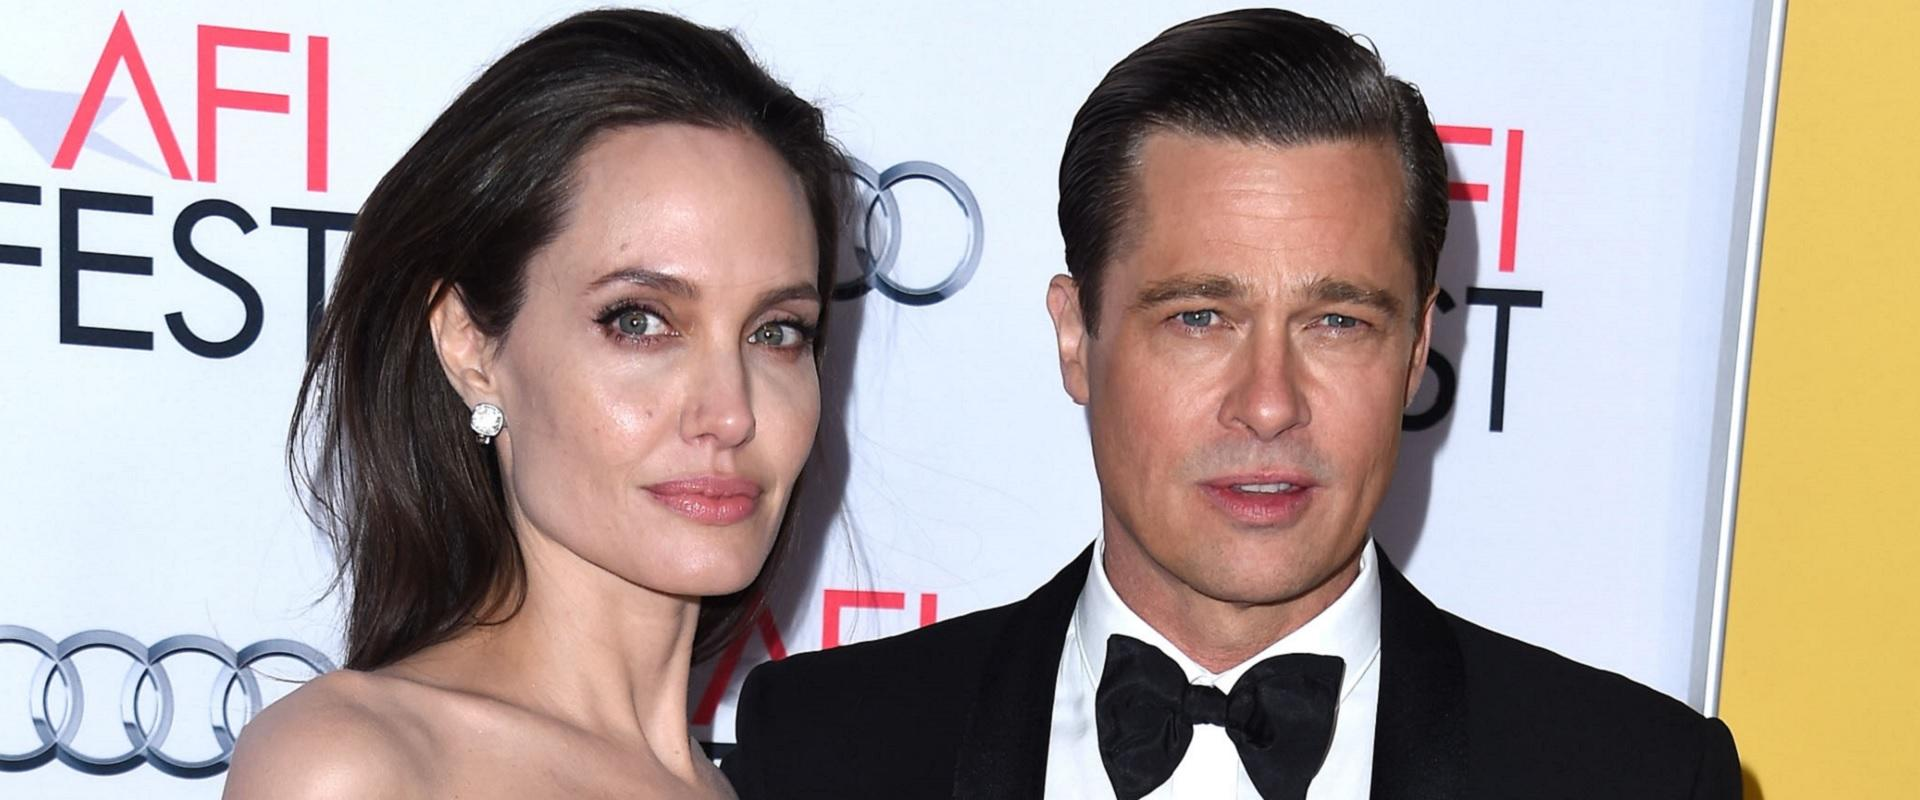 Angelina Jolie and Brad Pitt / Steve Granitz | Getty